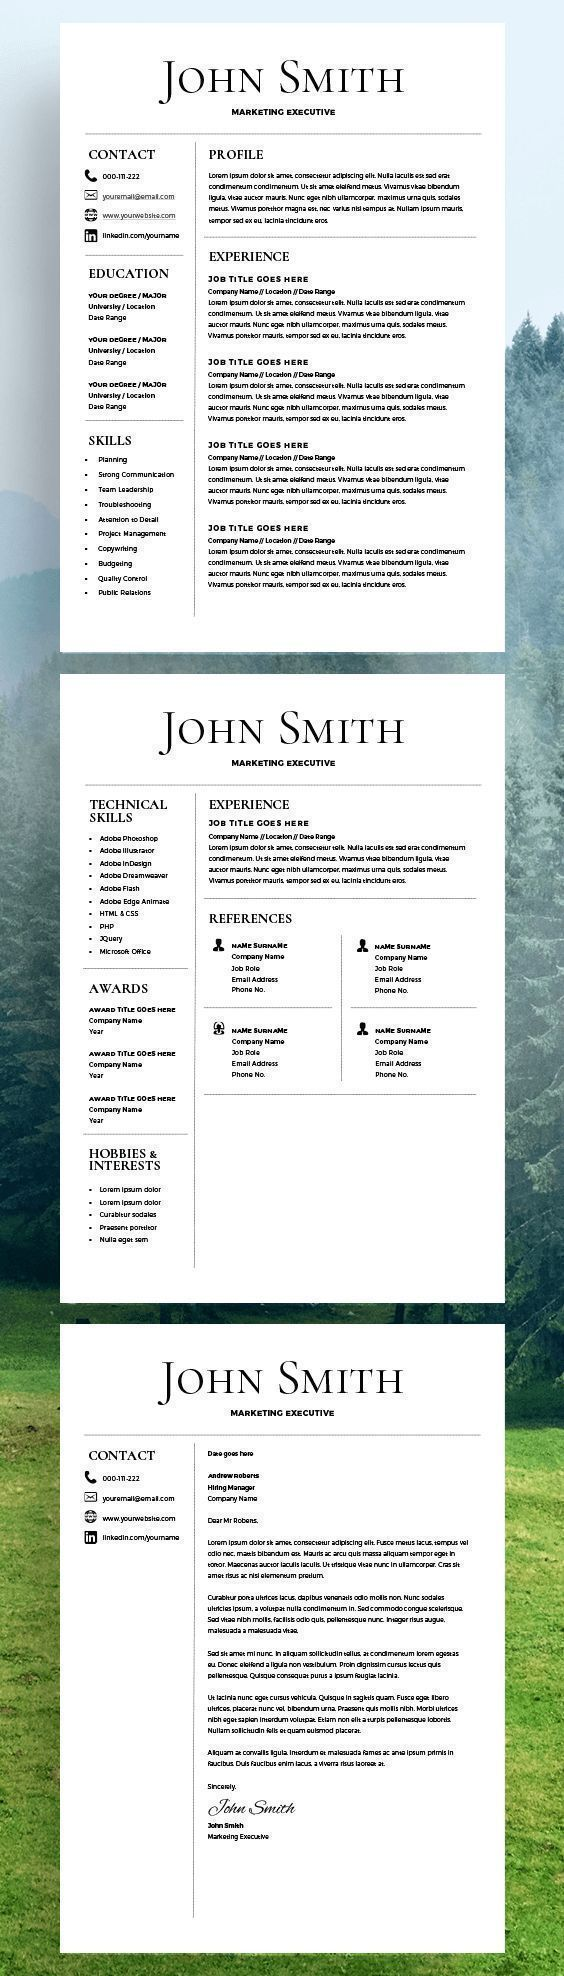 resume template cv template free cover letter ms word on mac pc - Excellent Resume Templates